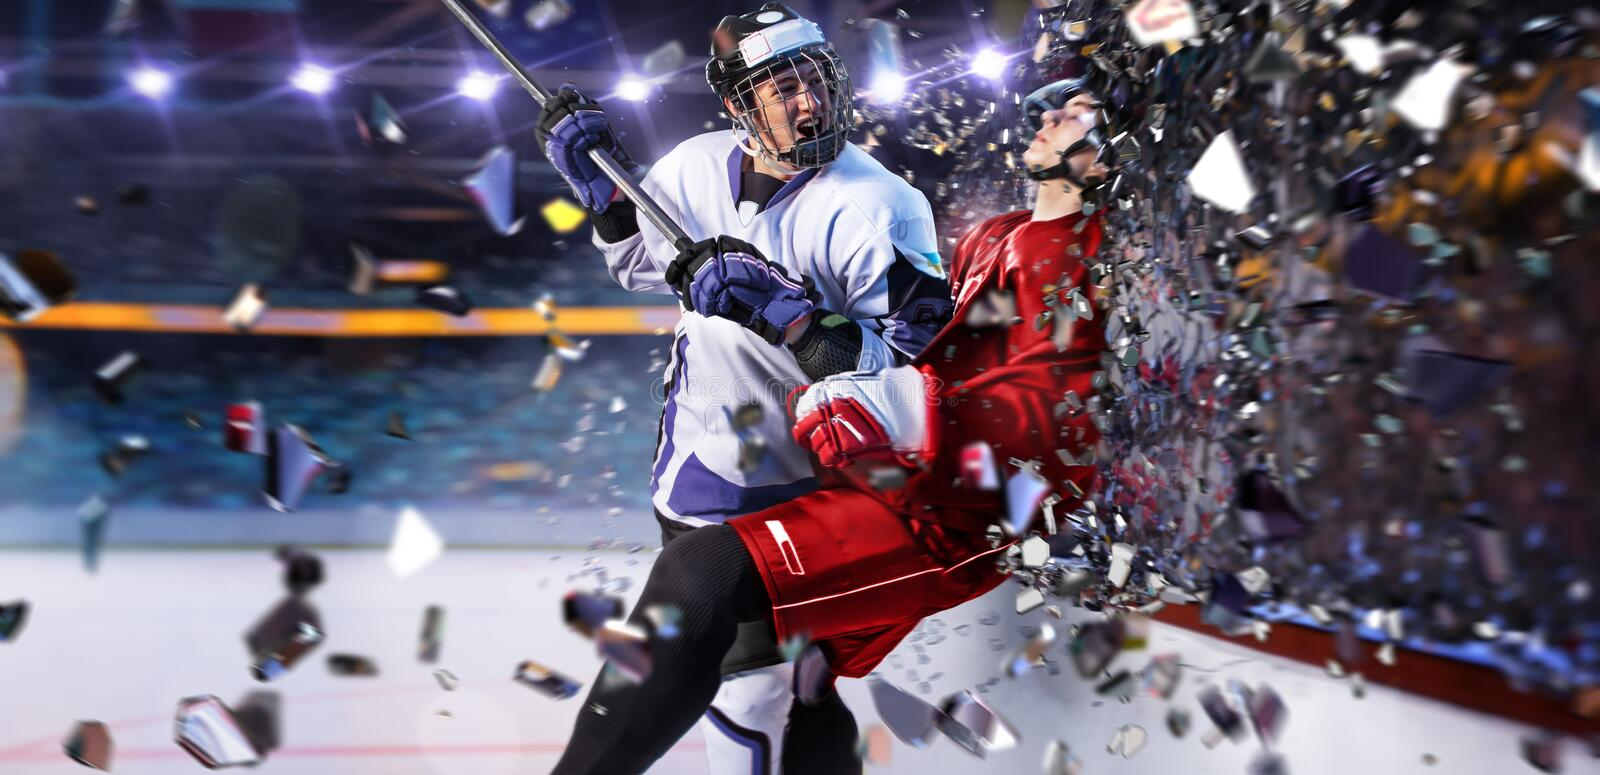 Hockey player in action aggressive  attack  motion photo stock photo